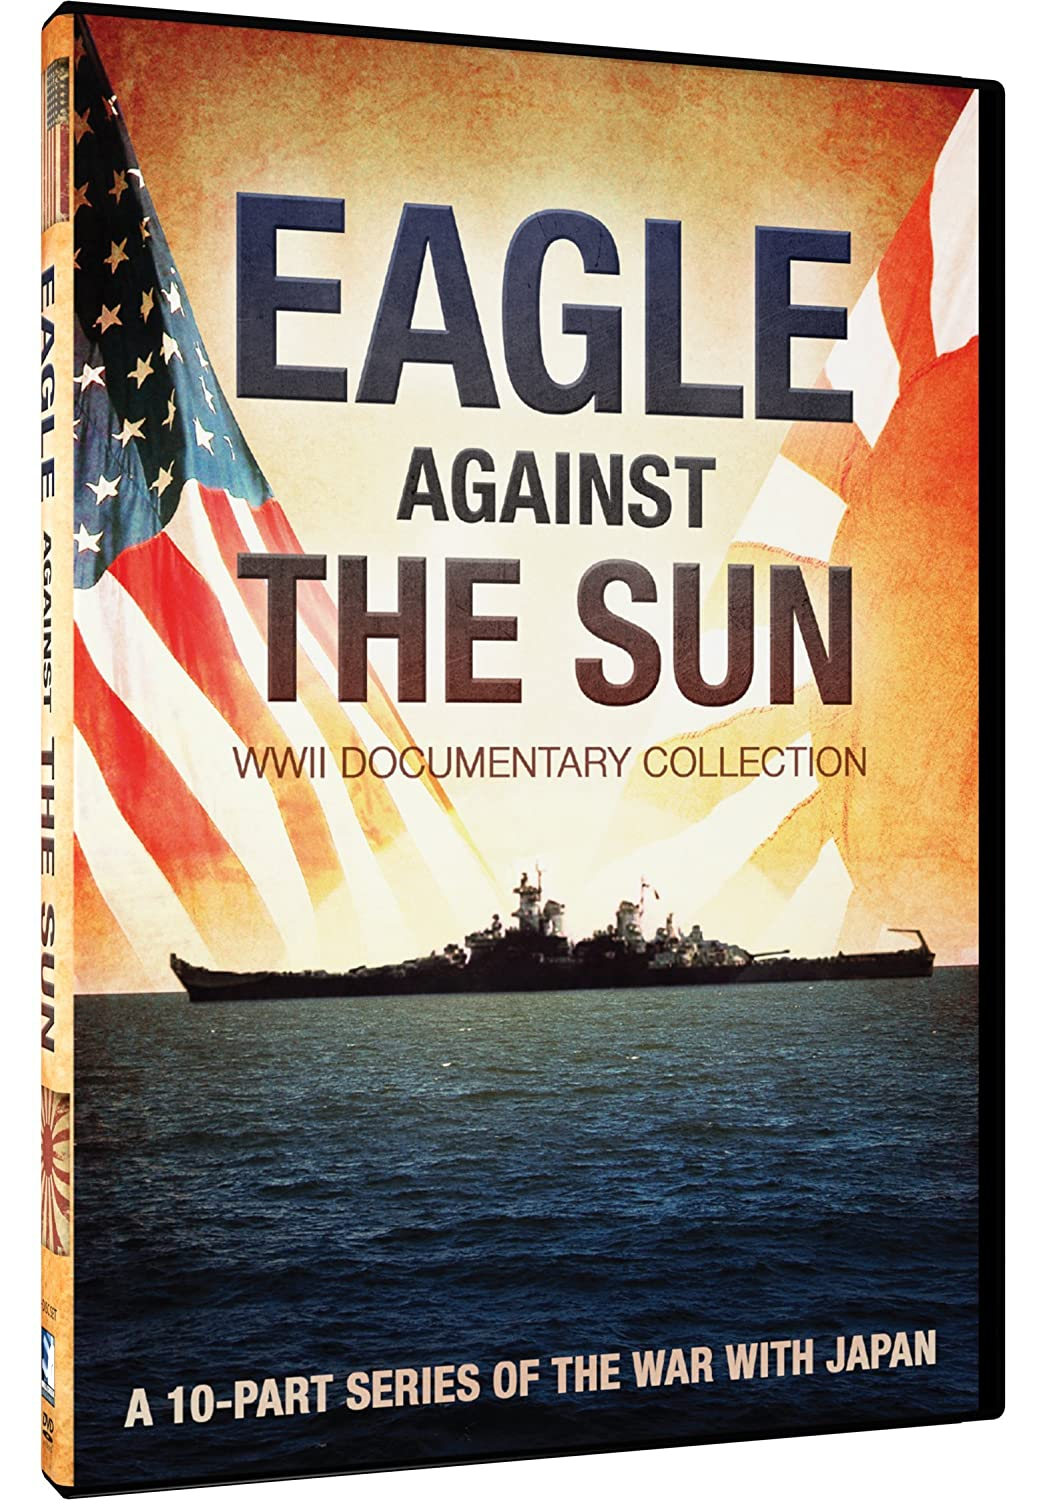 Amazon.com: Eagle Against The Sun - WWII Documentary Series: Various: Movies & TV